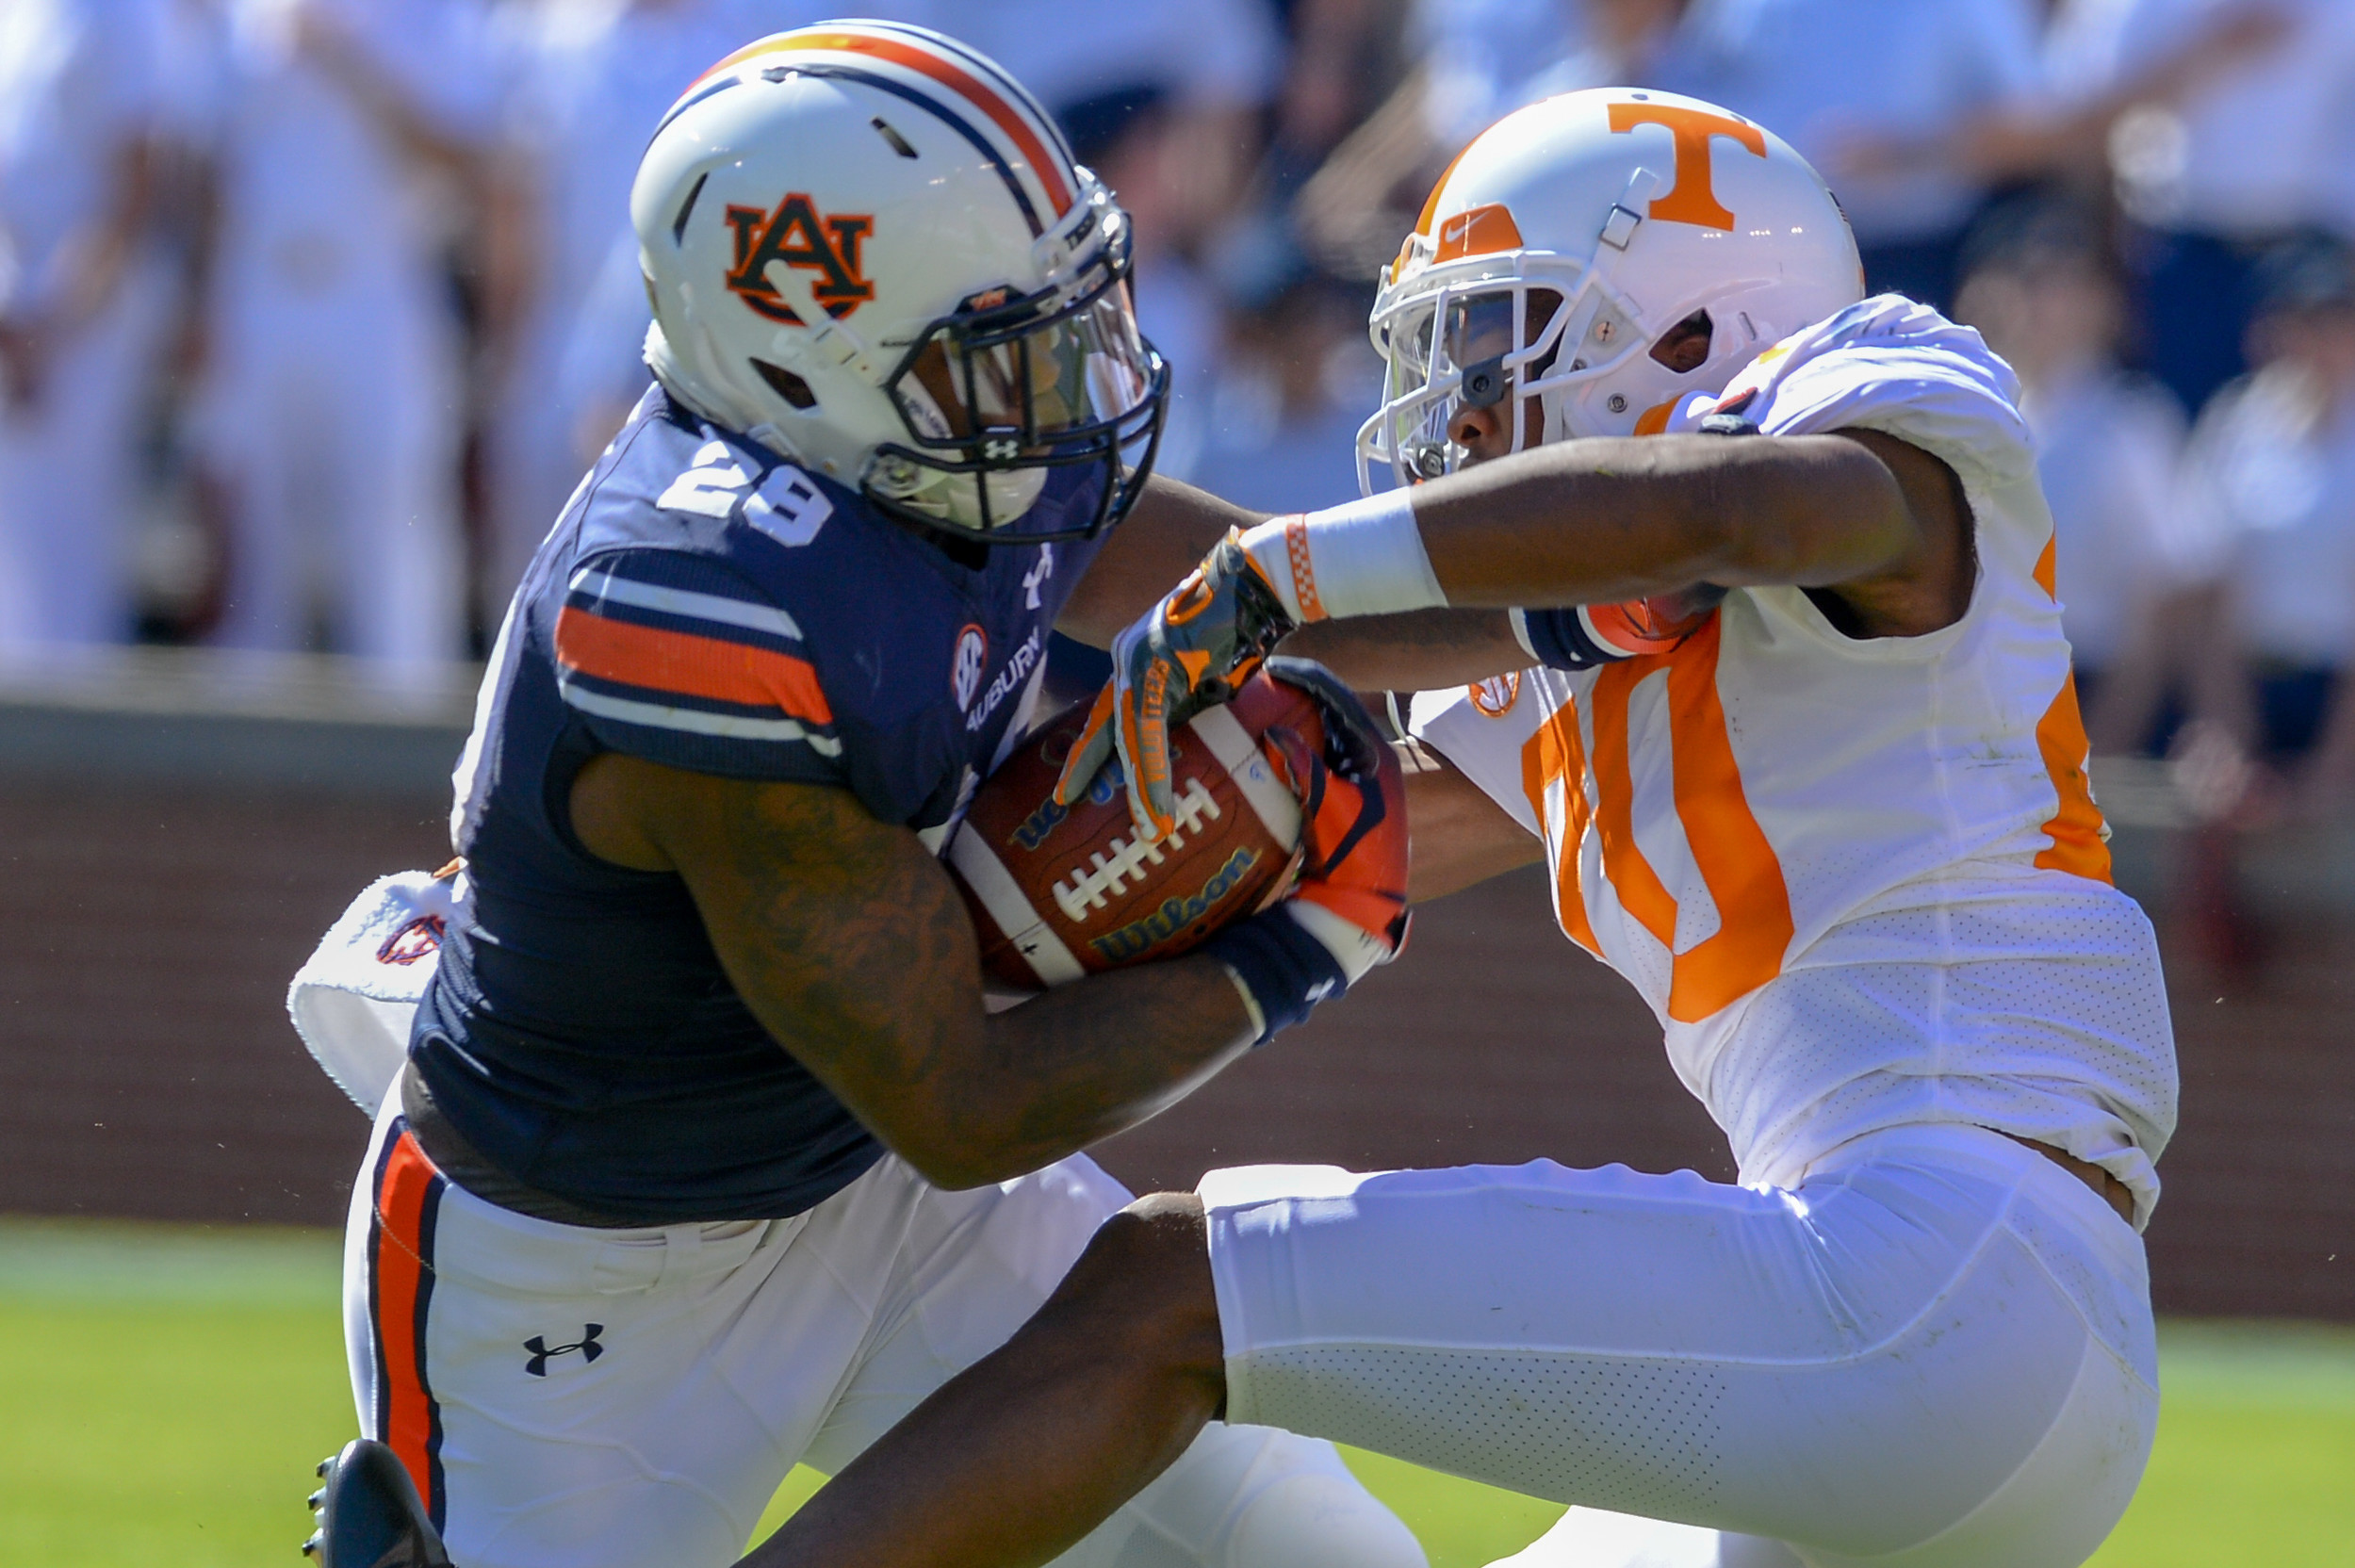 Auburn Tigers running back JaTarvious Whitlow (28) breaks the tackle of Tennessee Volunteers defensive back Bryce Thompson (20) during the first half of Saturday's game, at Jordan-Hare Stadium in Auburn, AL. Daily Mountain Eagle -  Jeff Johnsey